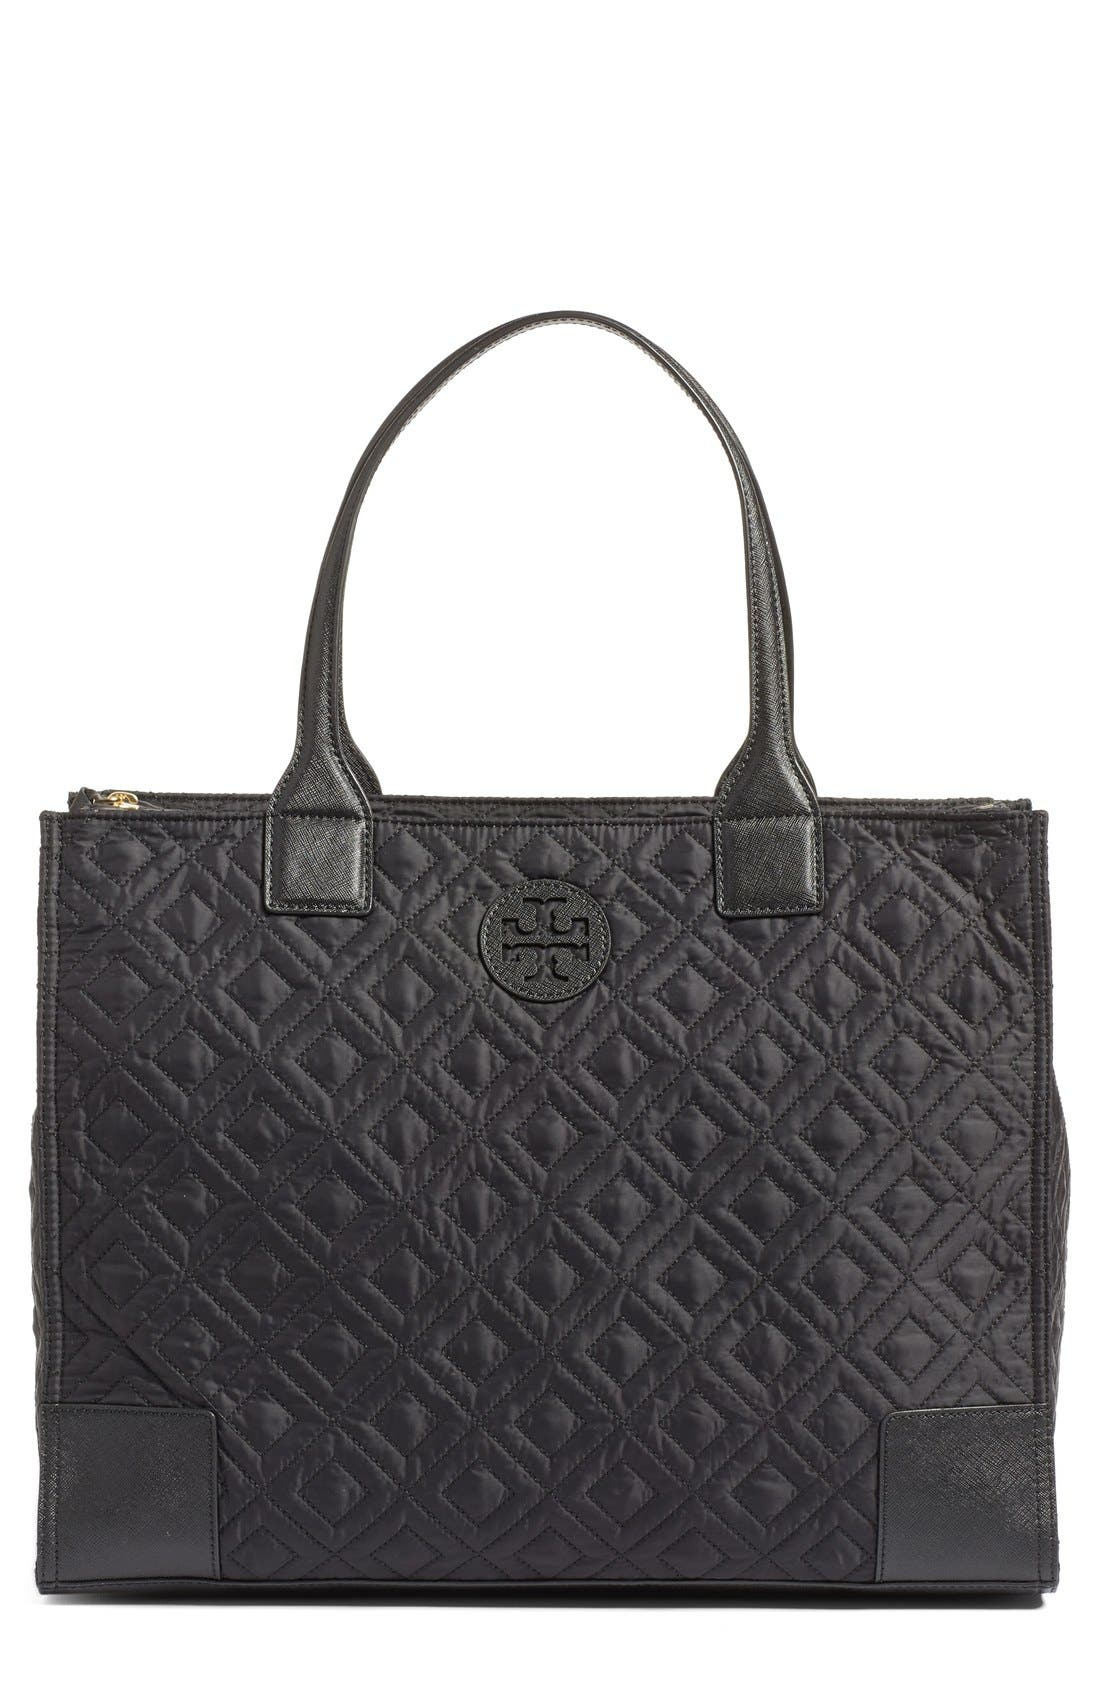 Alternate Image 1 Selected - Tory Burch 'Ella' Packable Quilted Nylon Tote